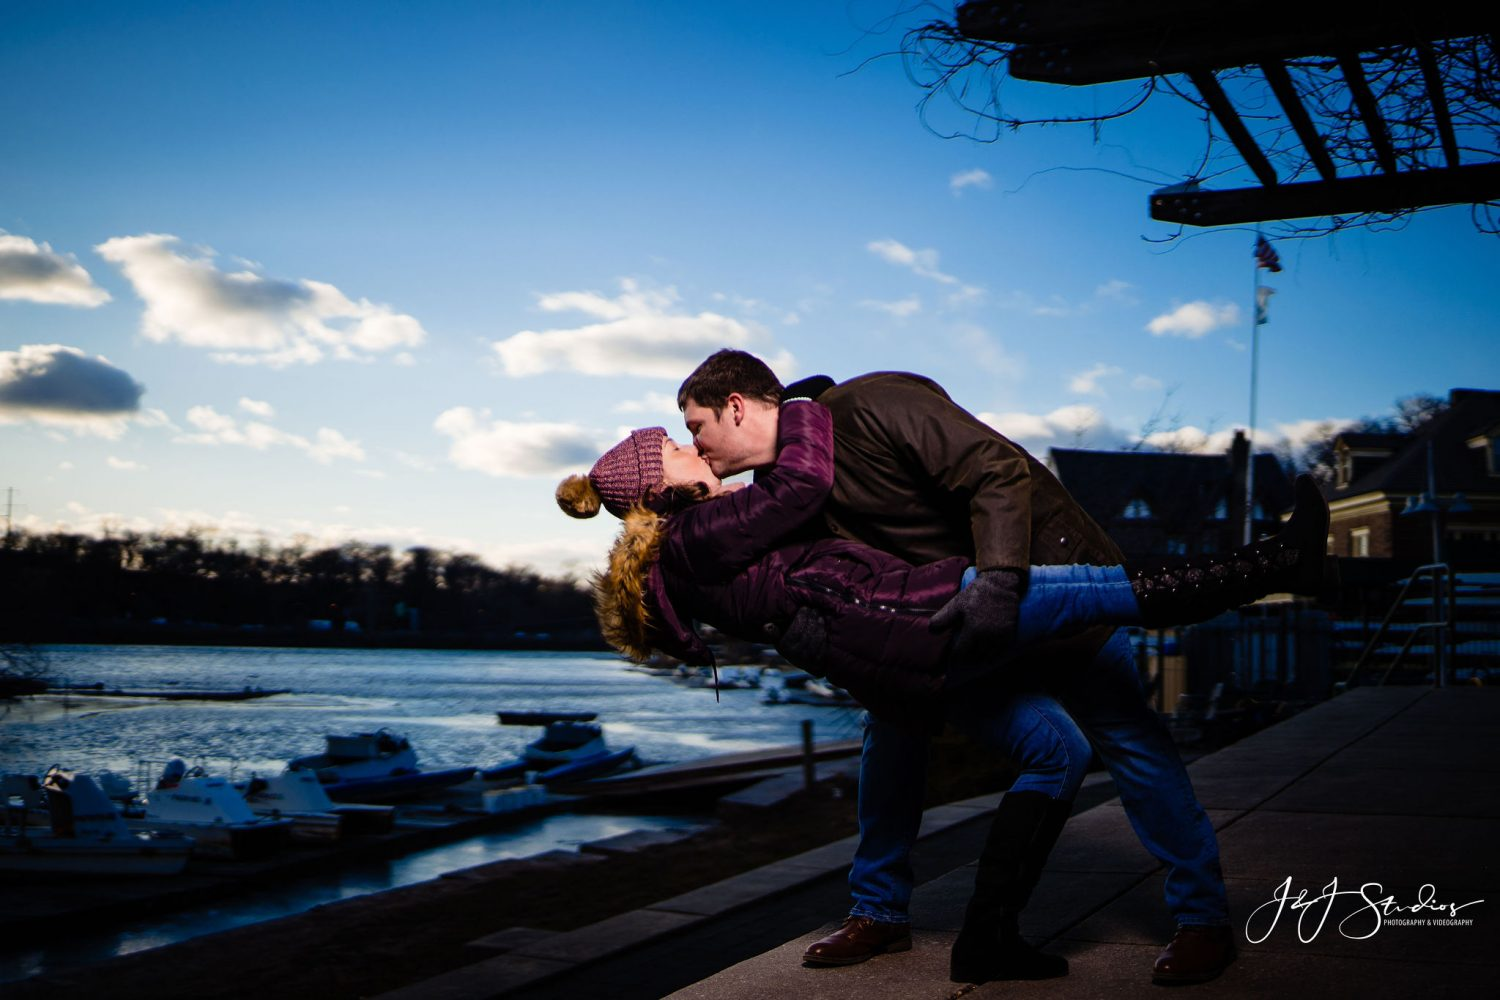 Kissing over the river